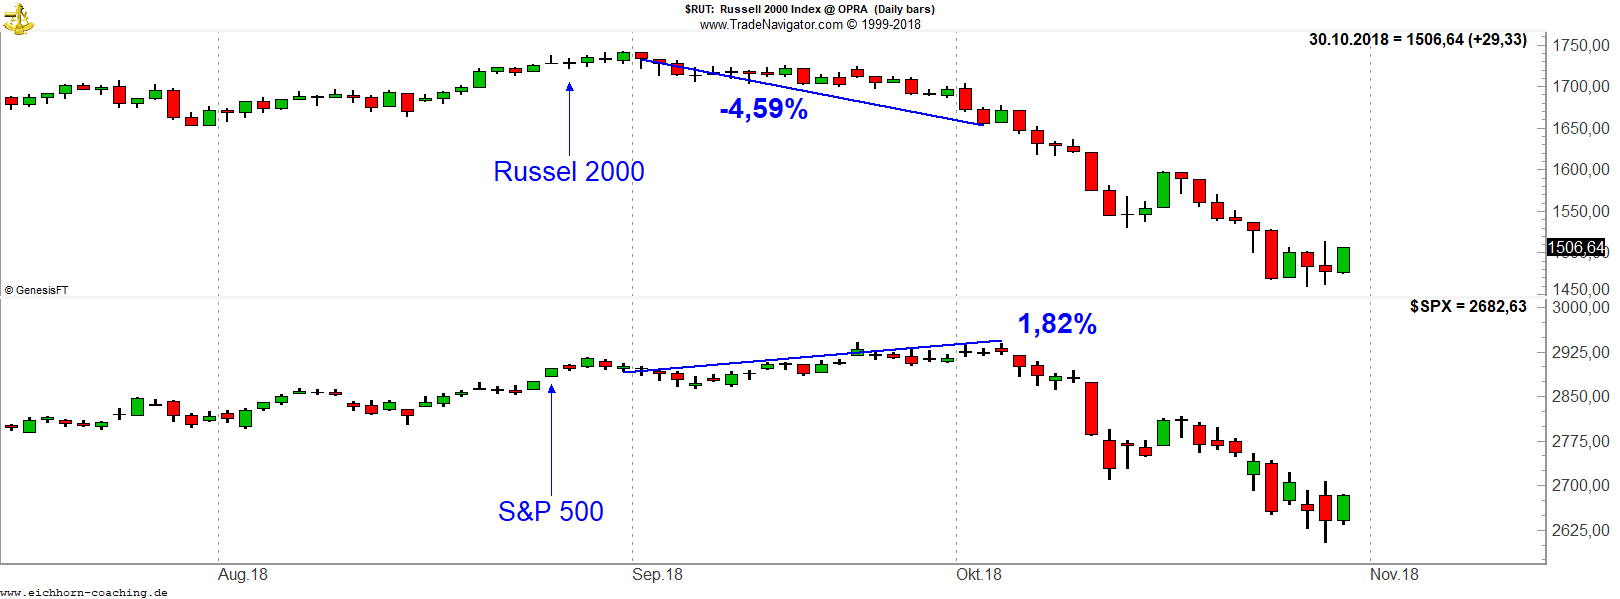 Russel 2000 Index vs. SPX